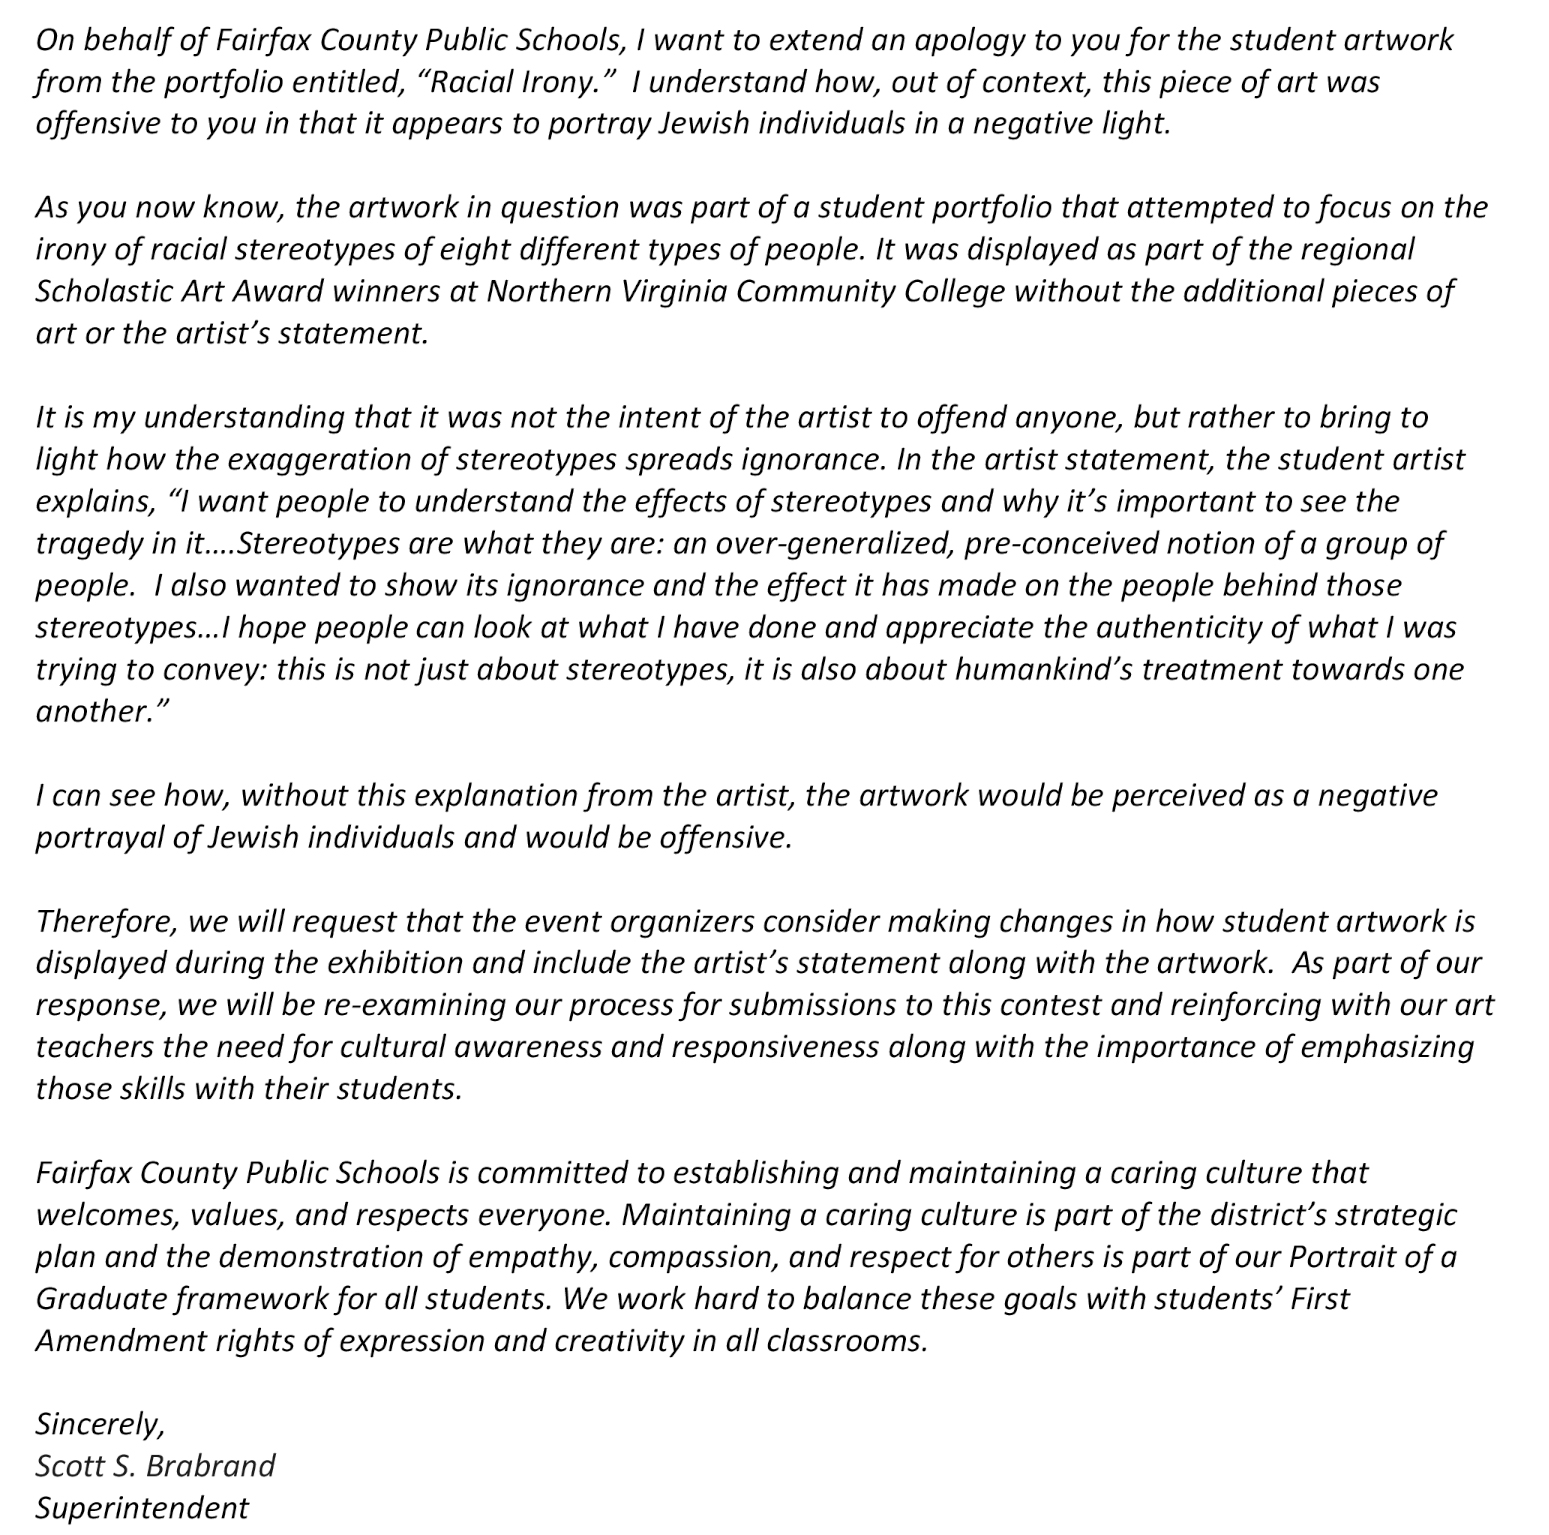 Dr. Brabrand letter on Scholastic Art Awards